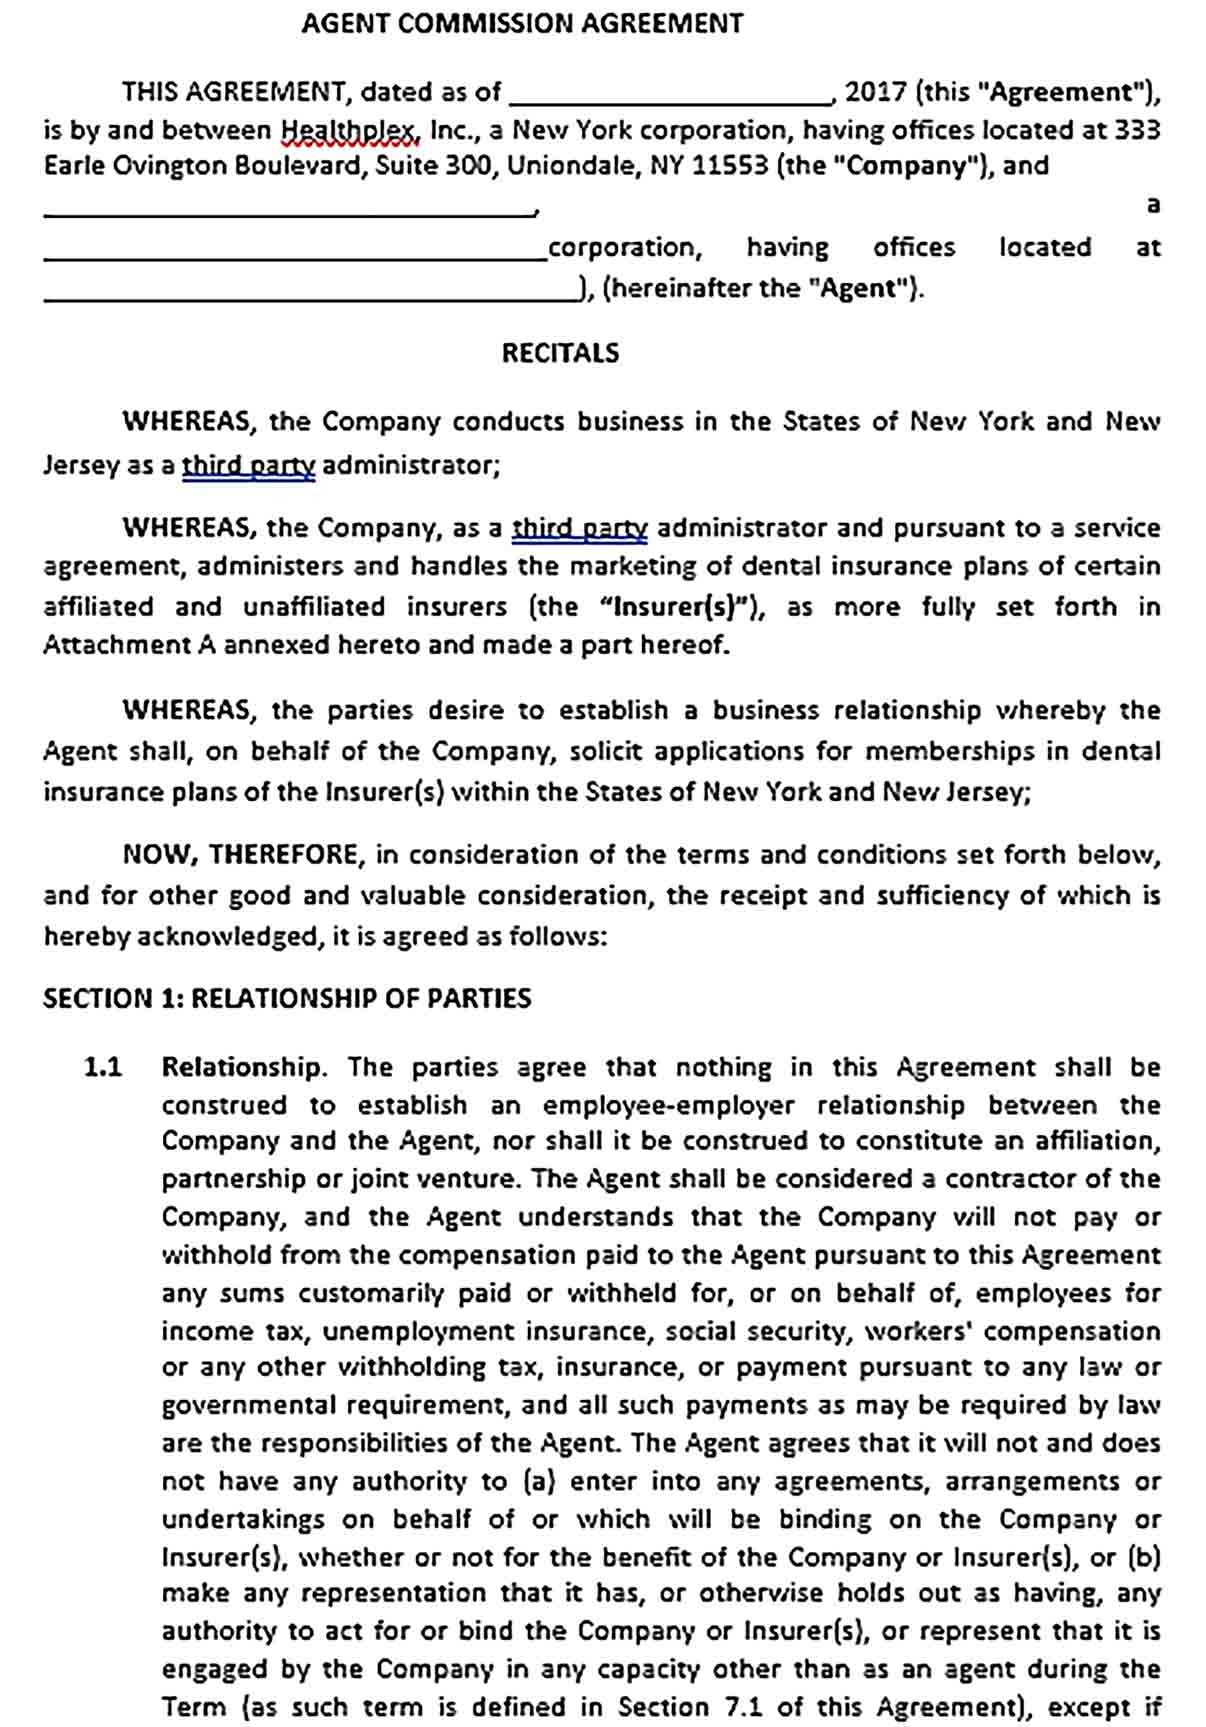 Sample Commission Agent Agreement